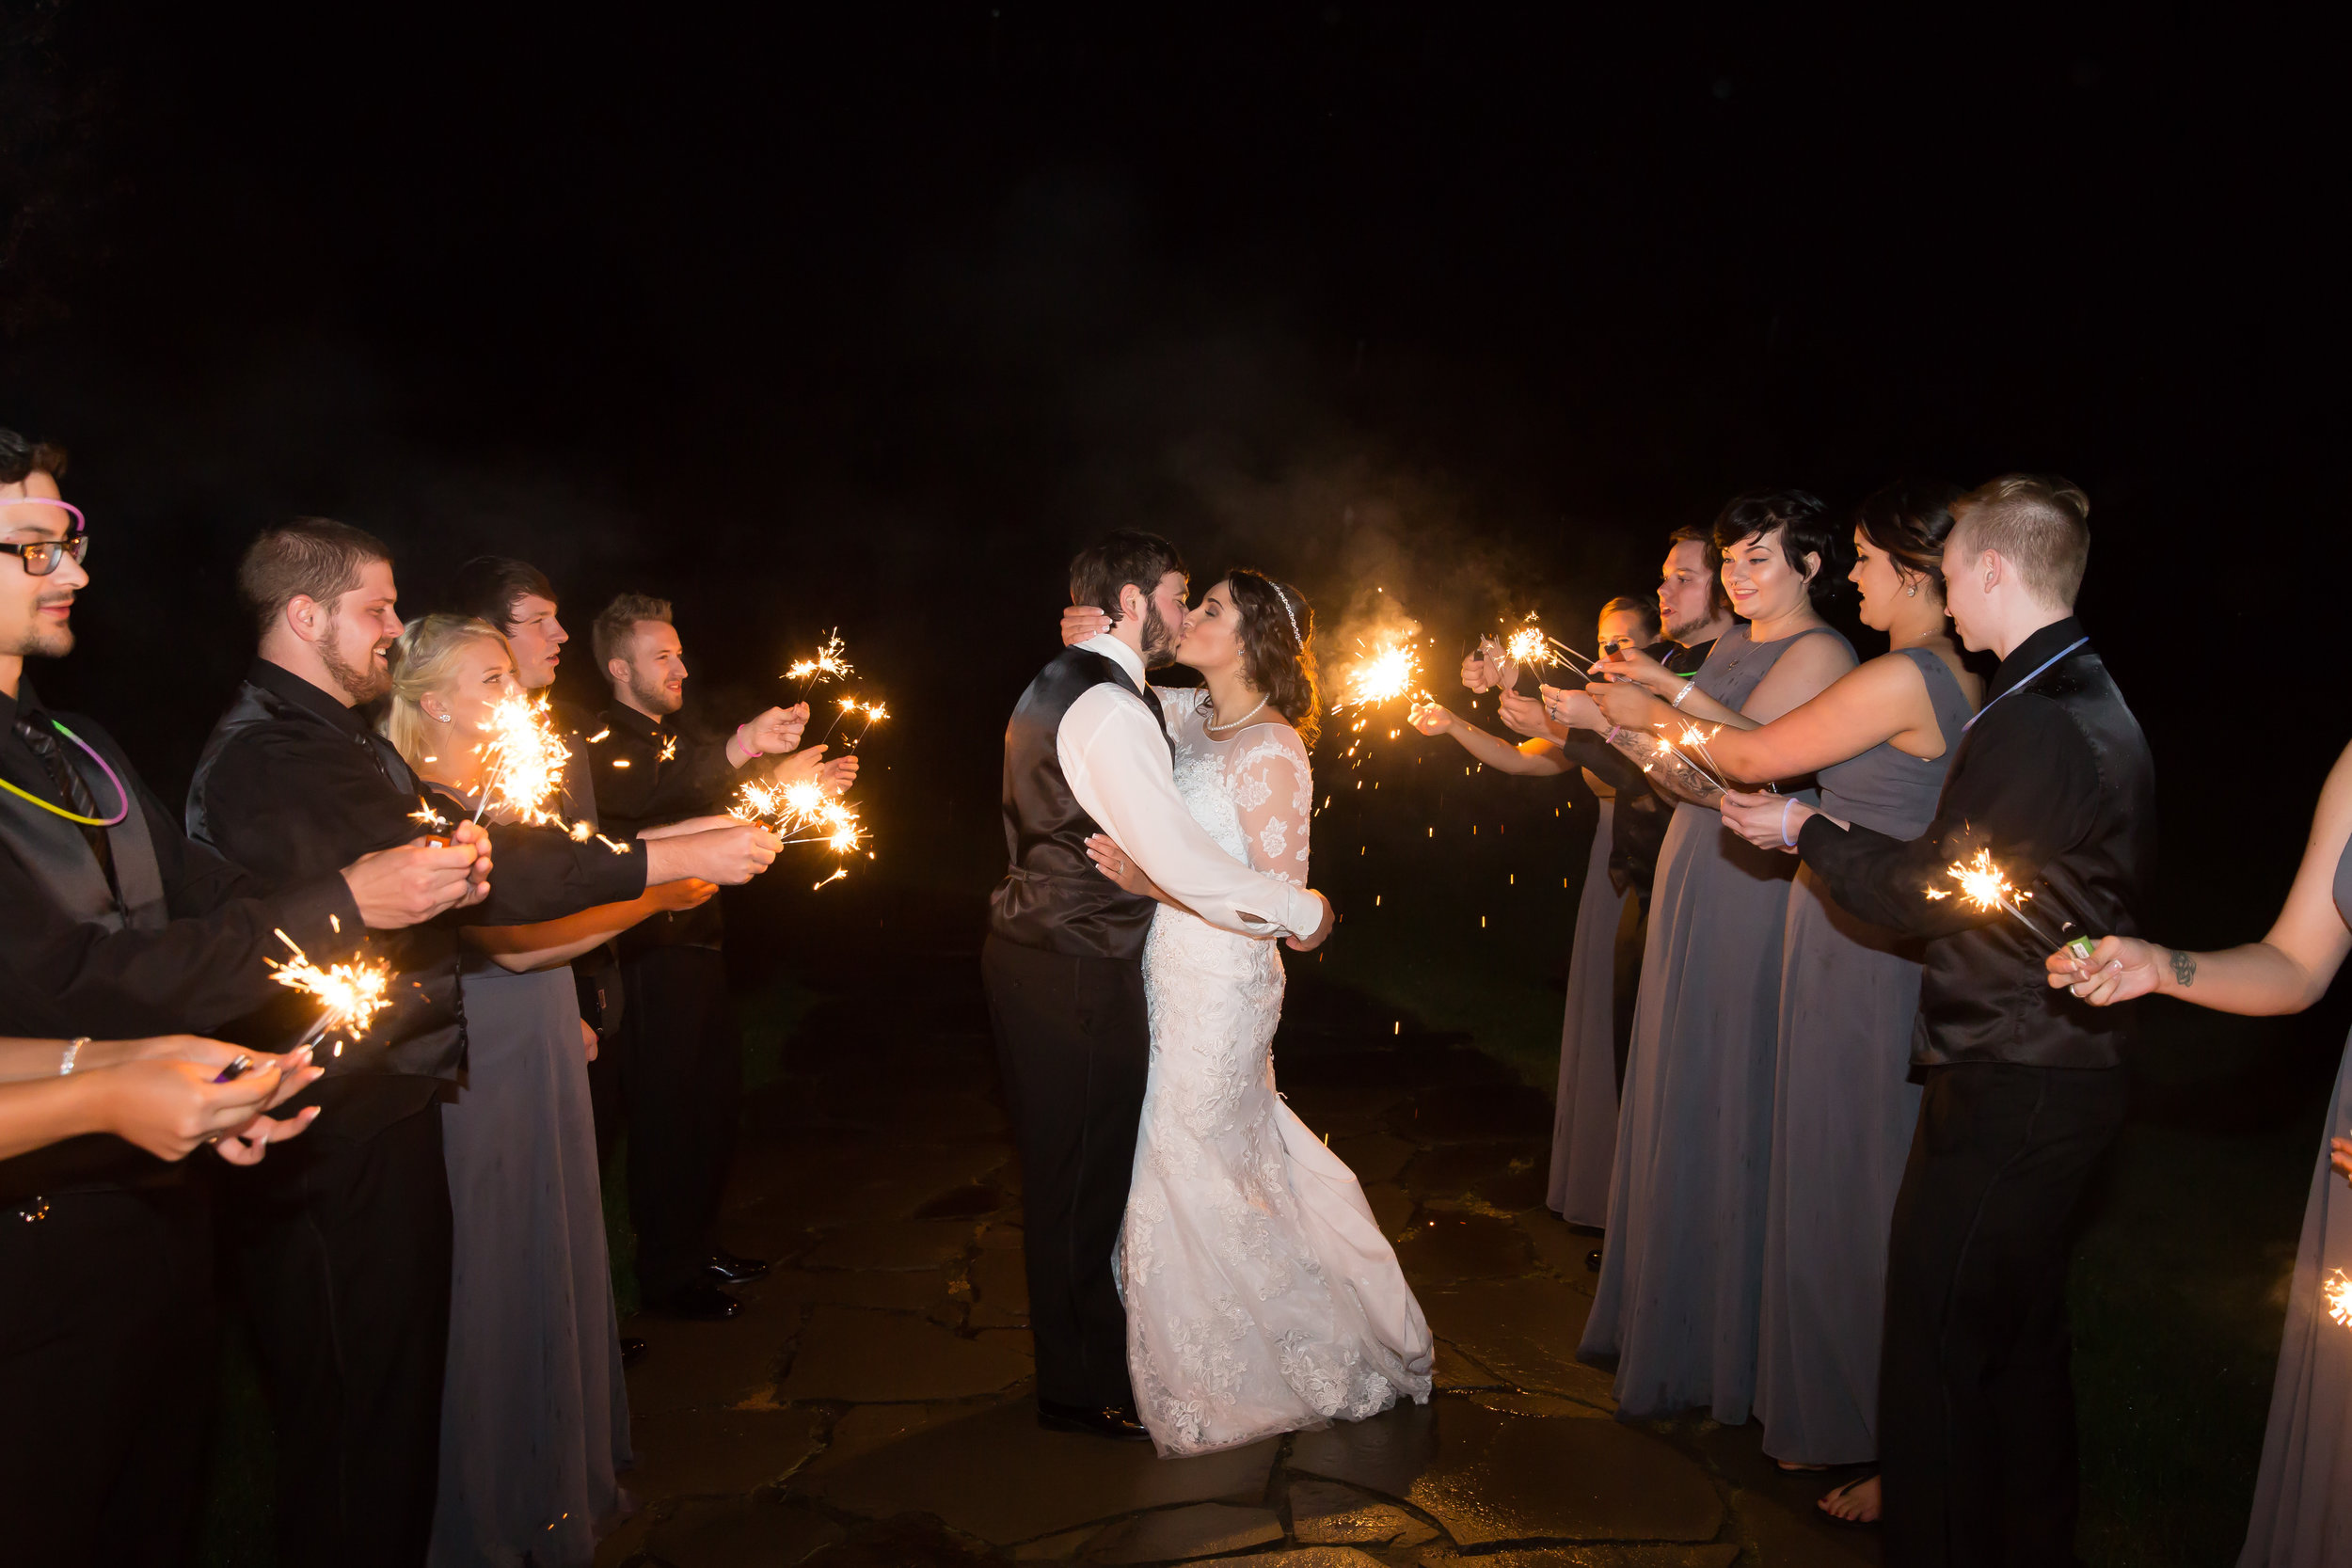 Who doesn't like a little fire at a wedding ;)